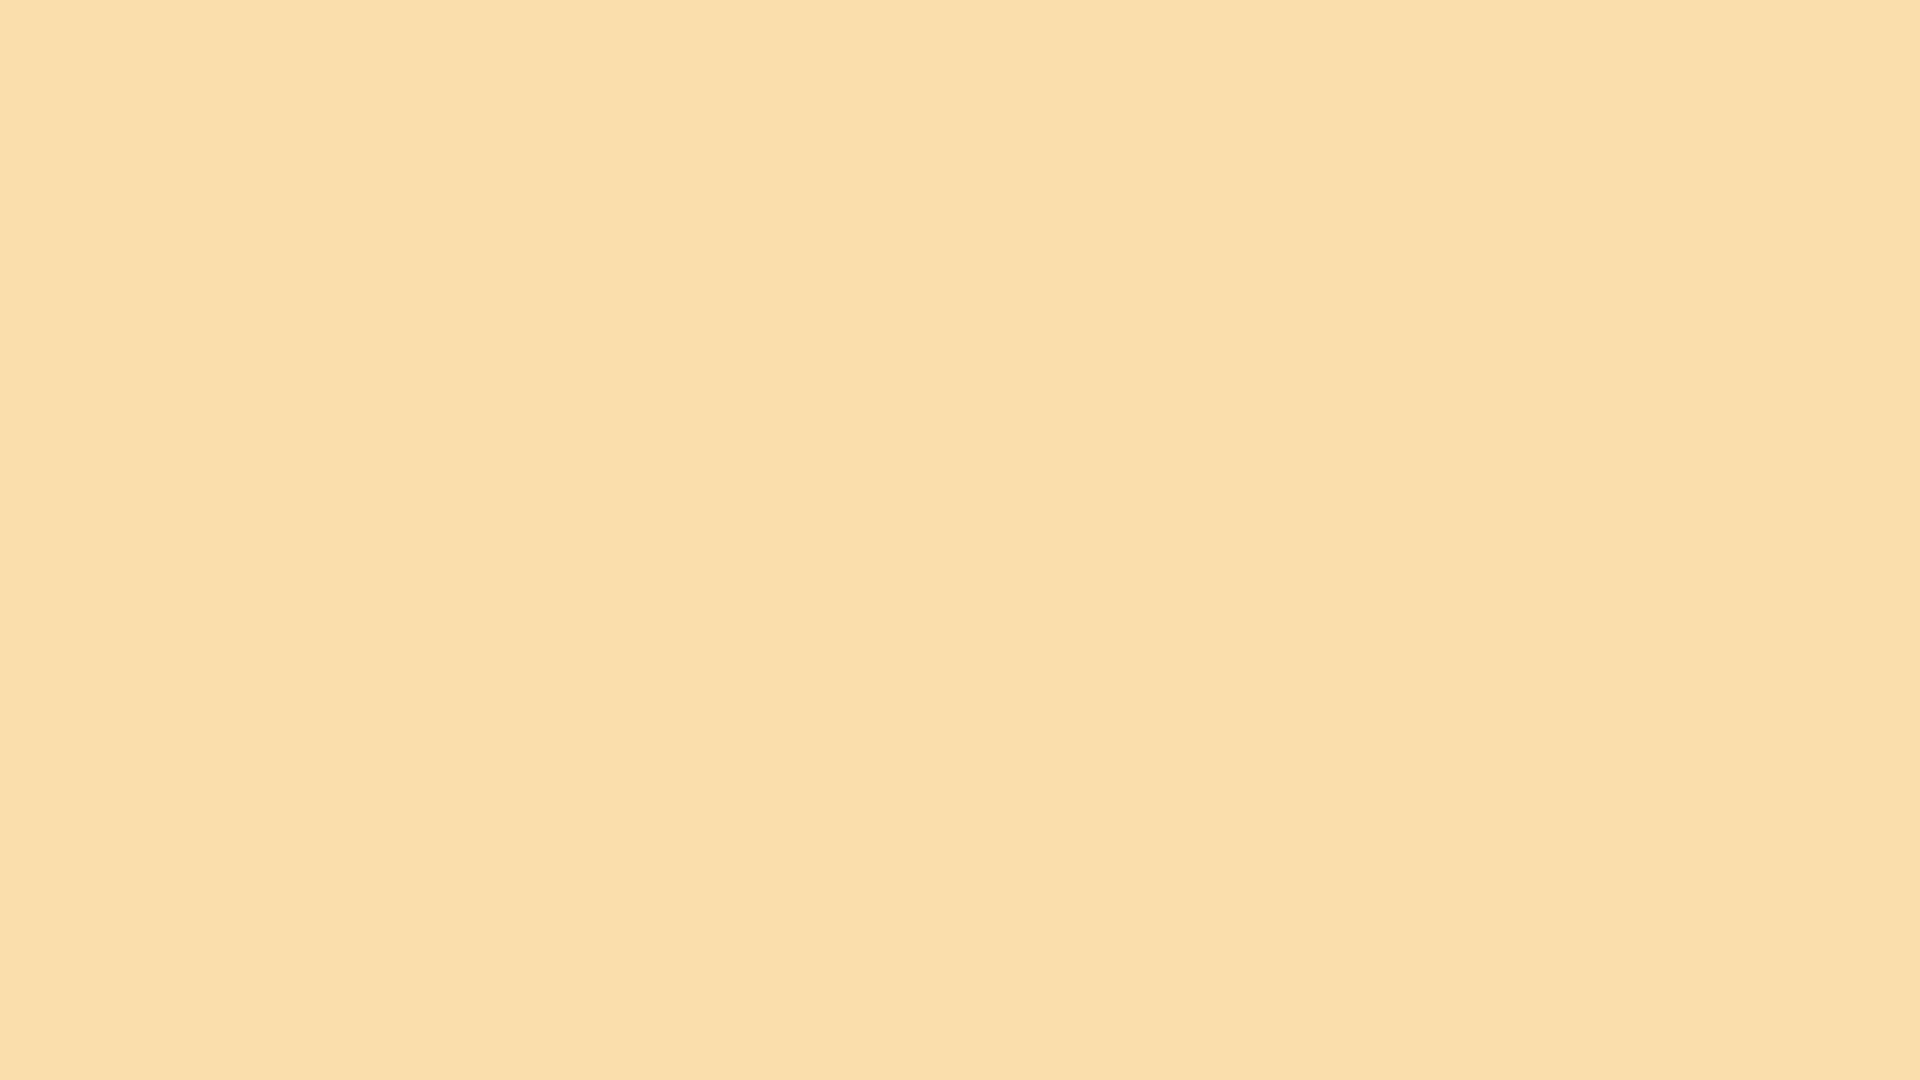 1920x1080 Peach-yellow Solid Color Background